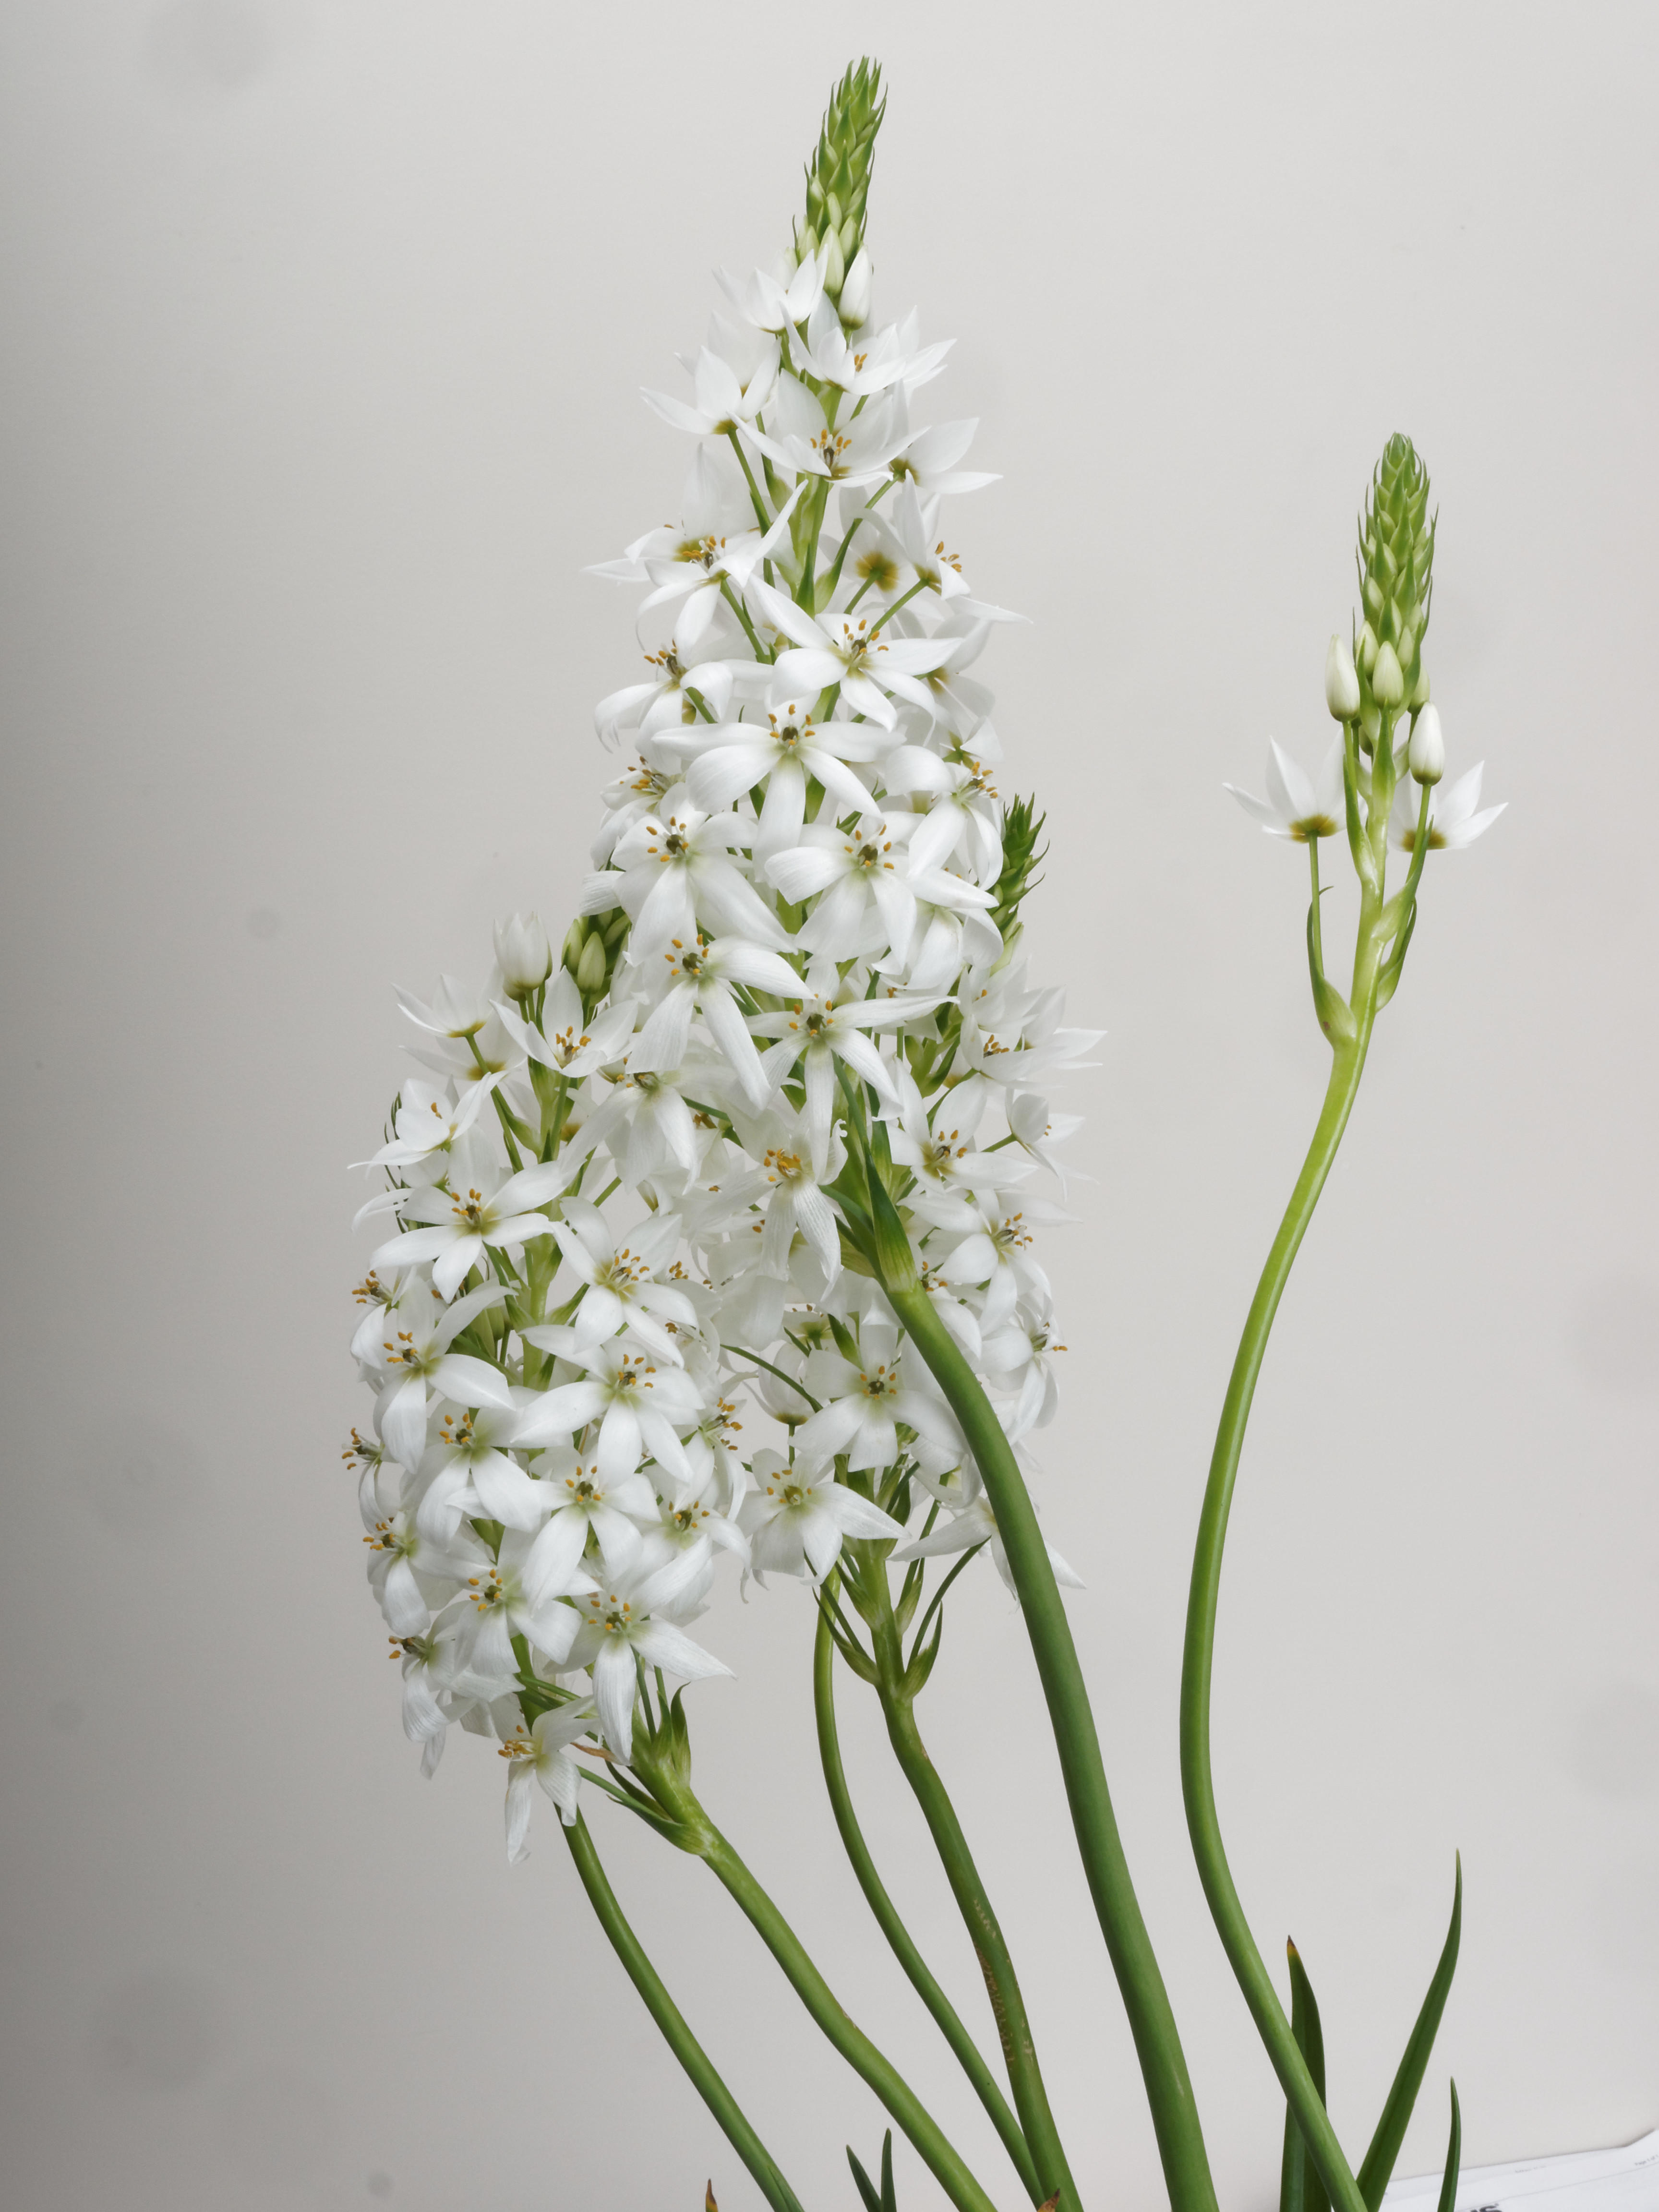 This should be Ornithogalum-2.jpeg.  Is it missing?